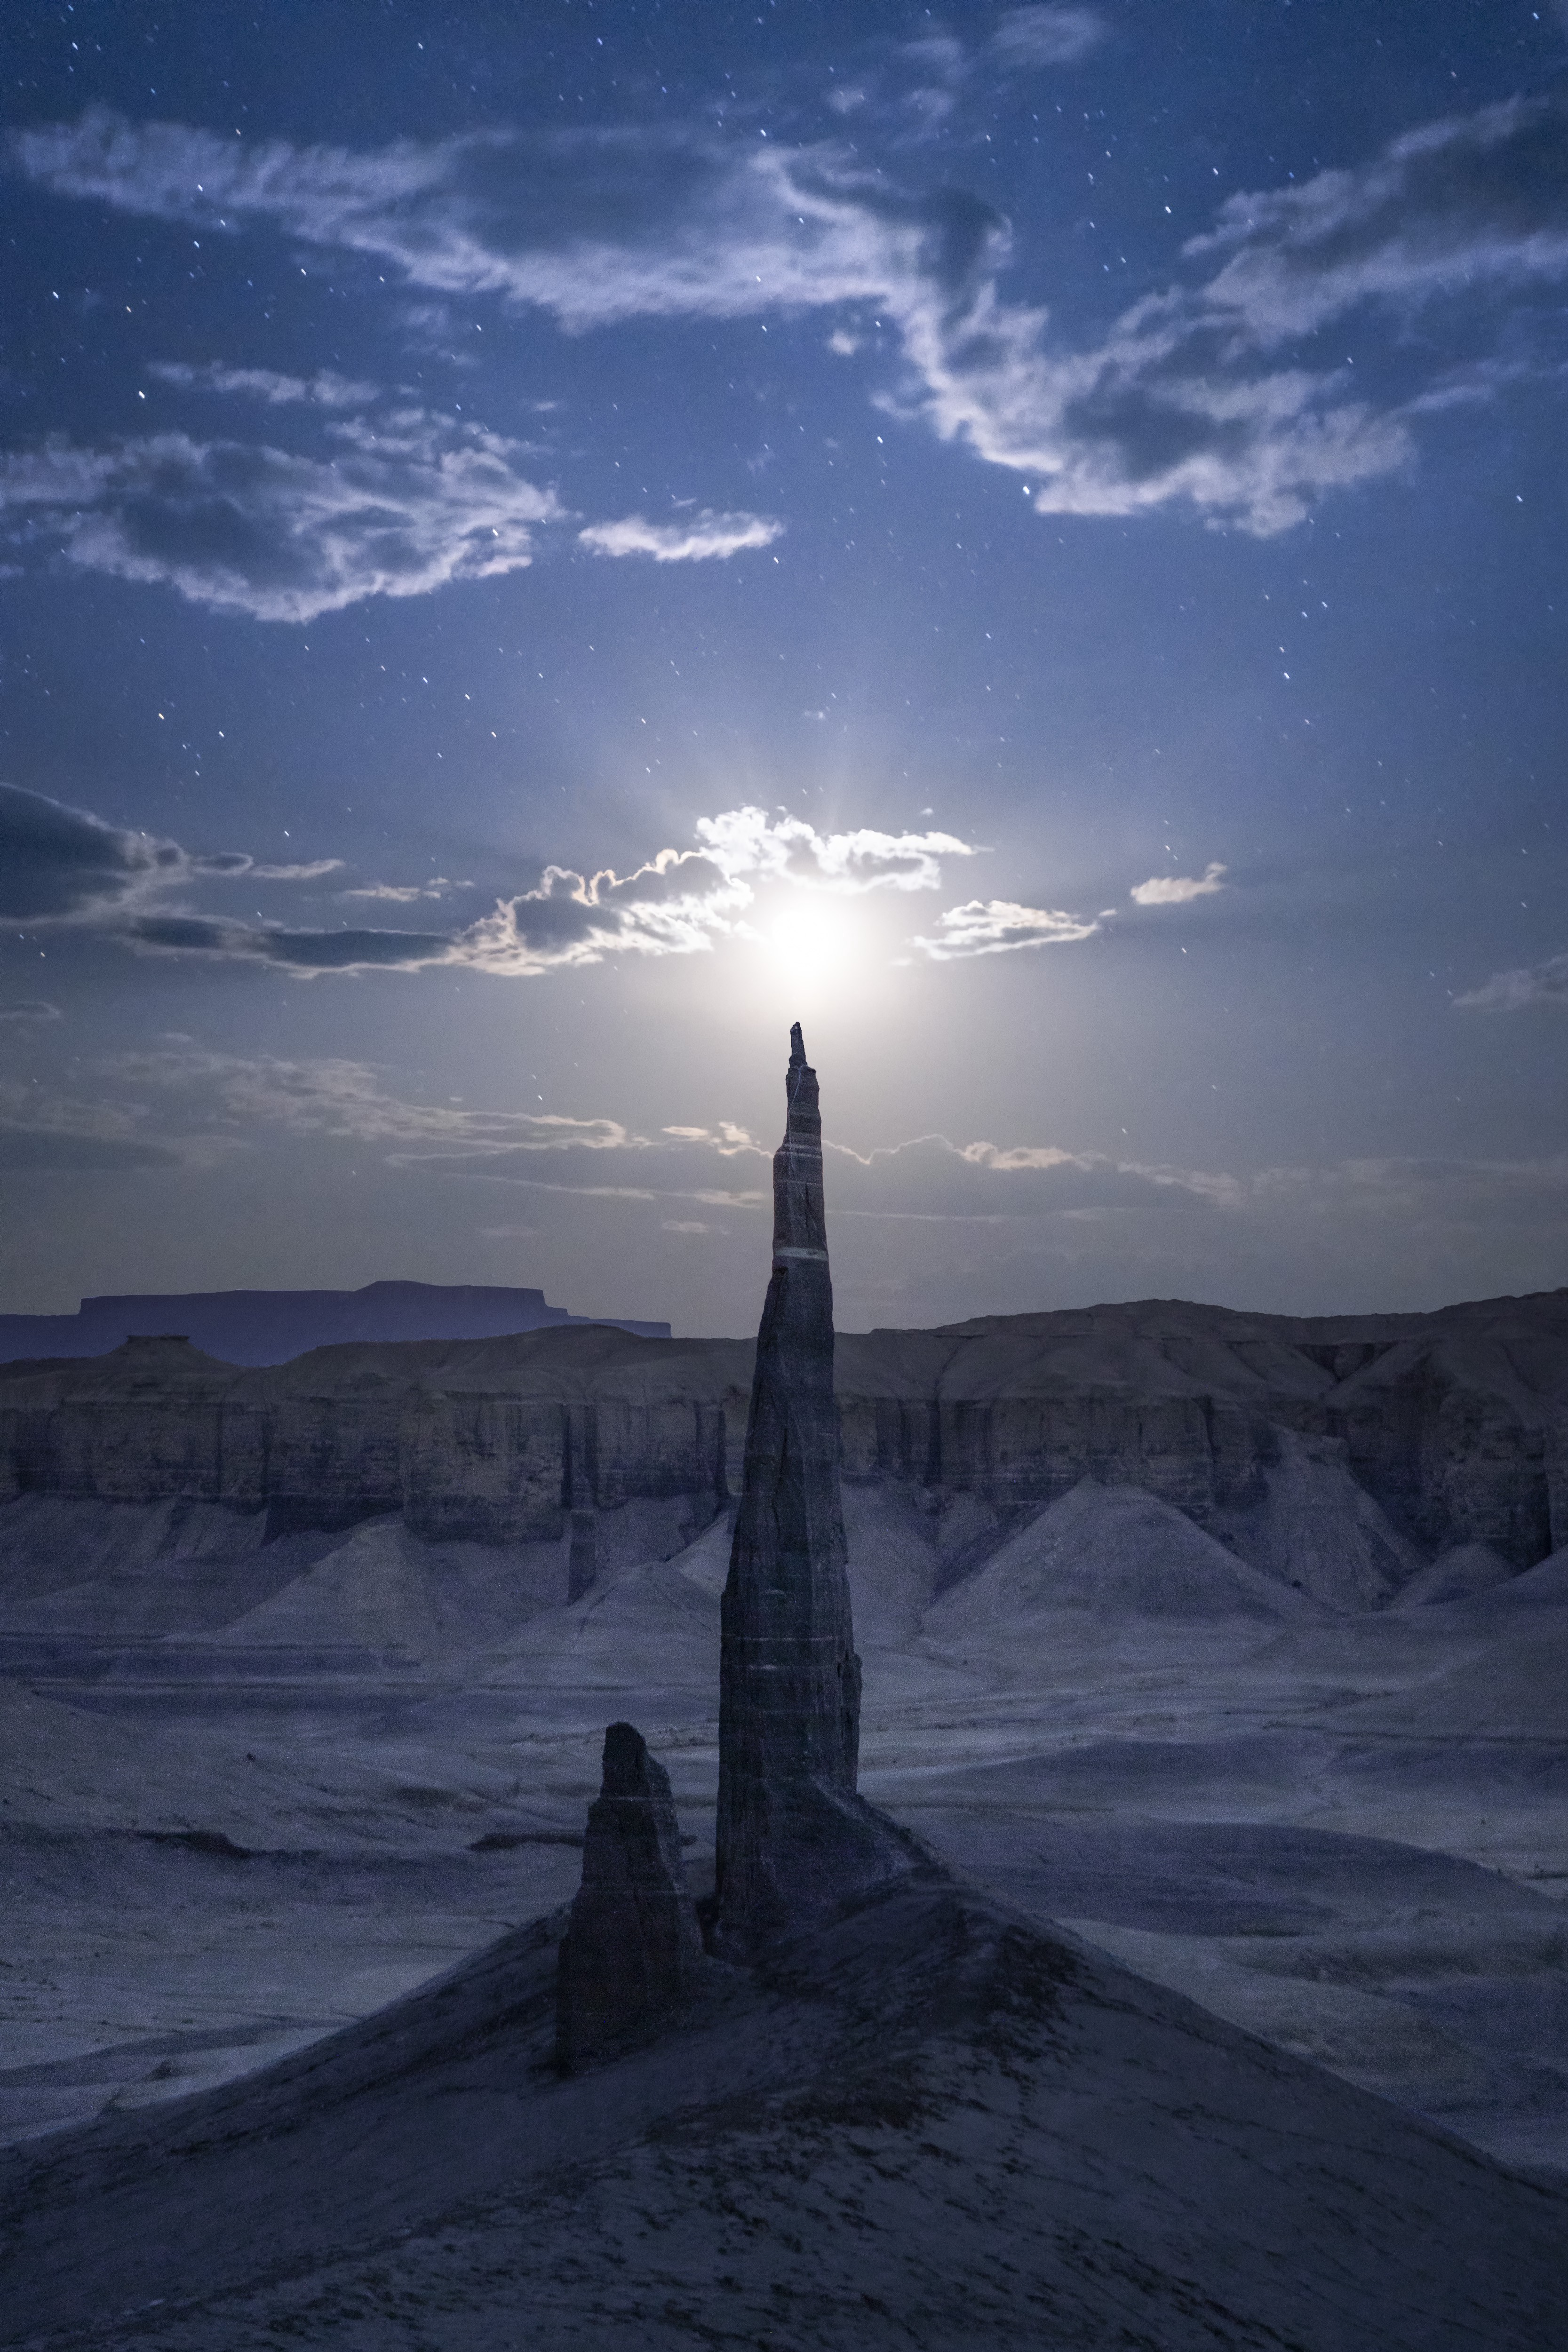 A tall natural peak seems to reach towards the glowing white sun, on a snowy landscape